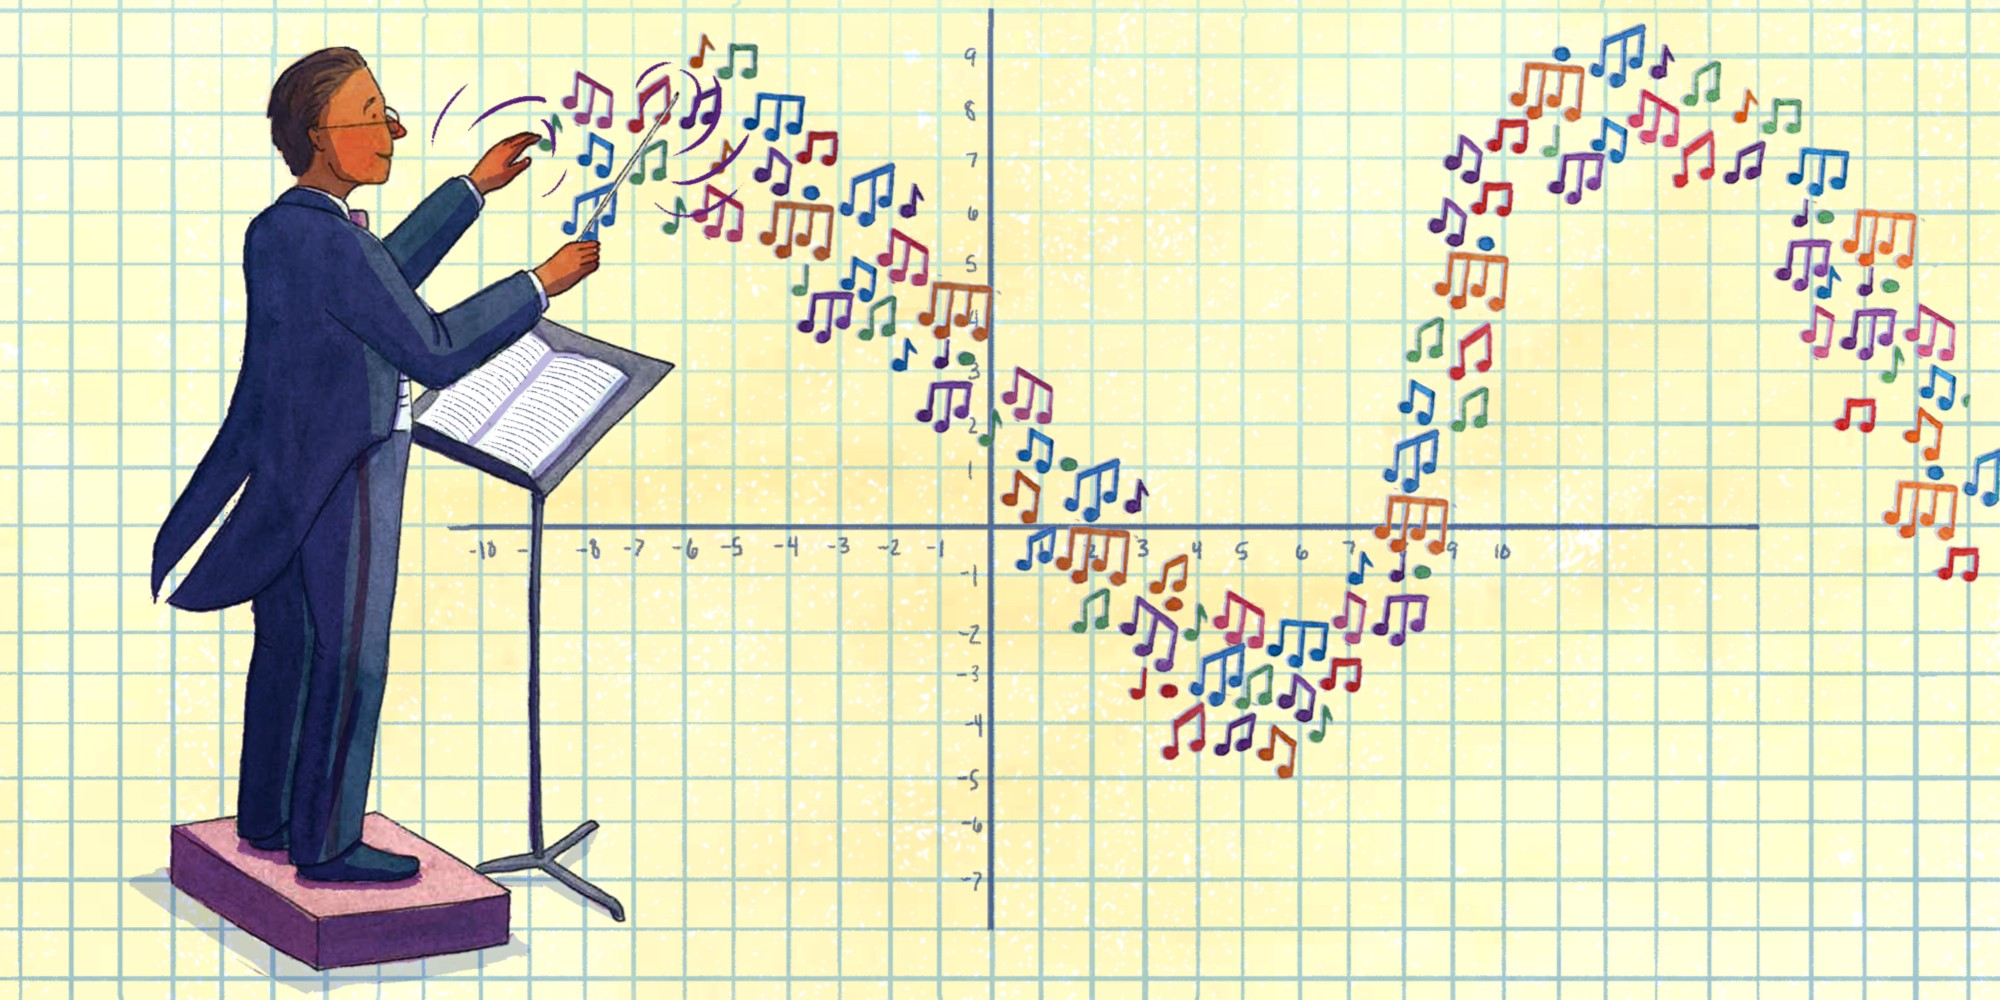 How I Use Music to Inspire Math Students